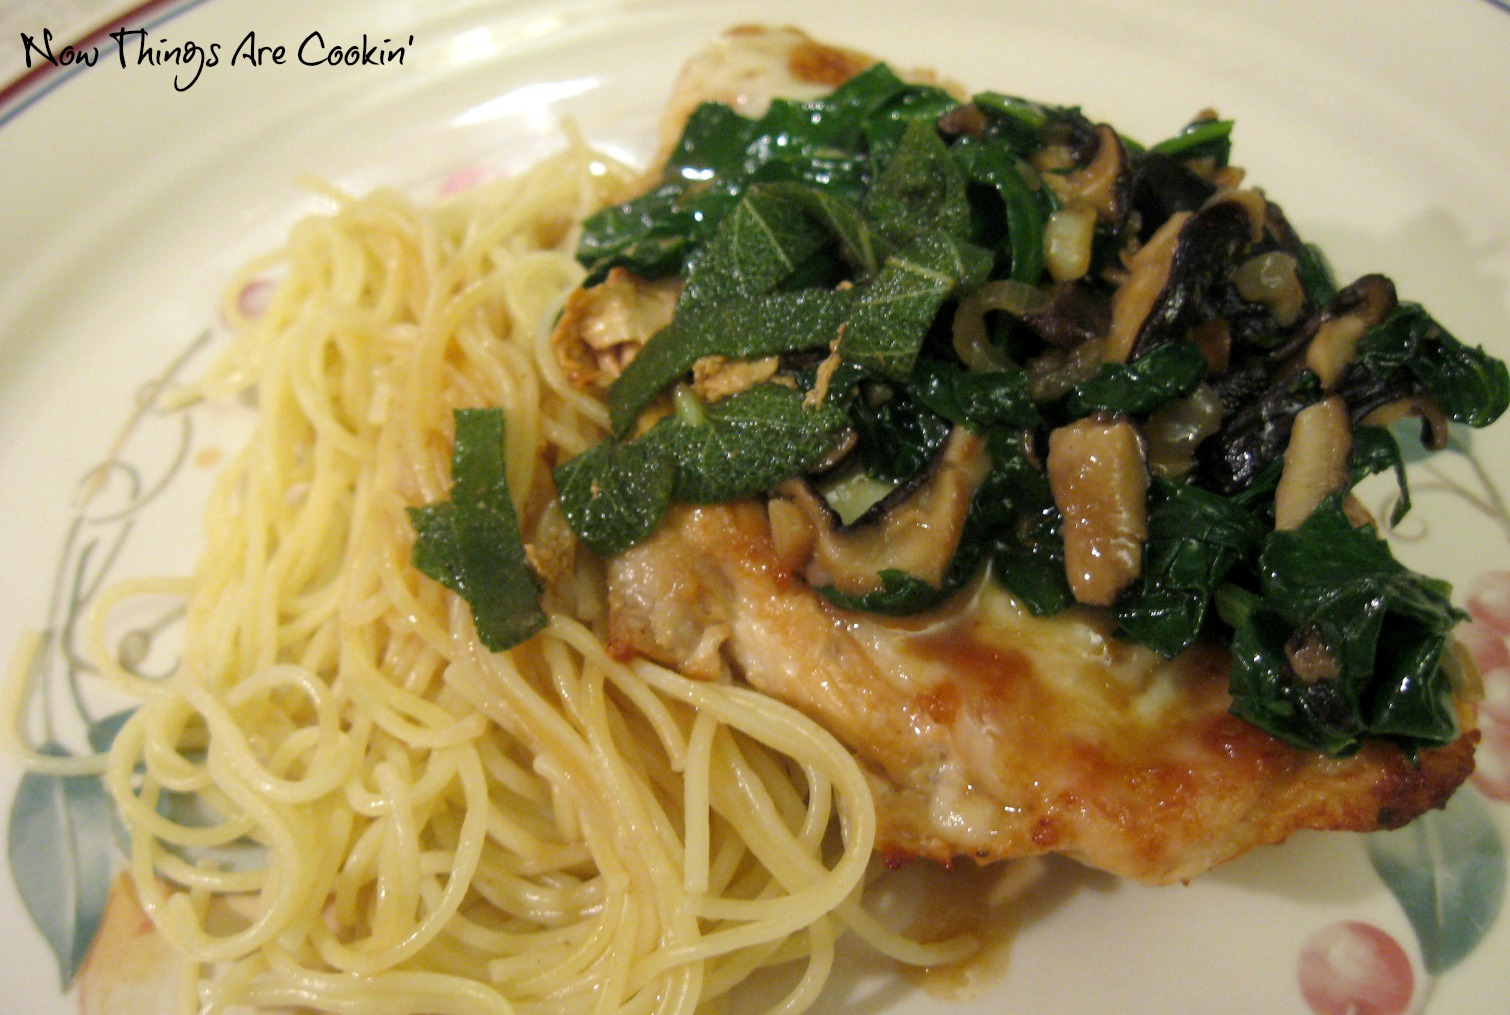 chicken saltimbocca is one of those things i tried to make years ago ...